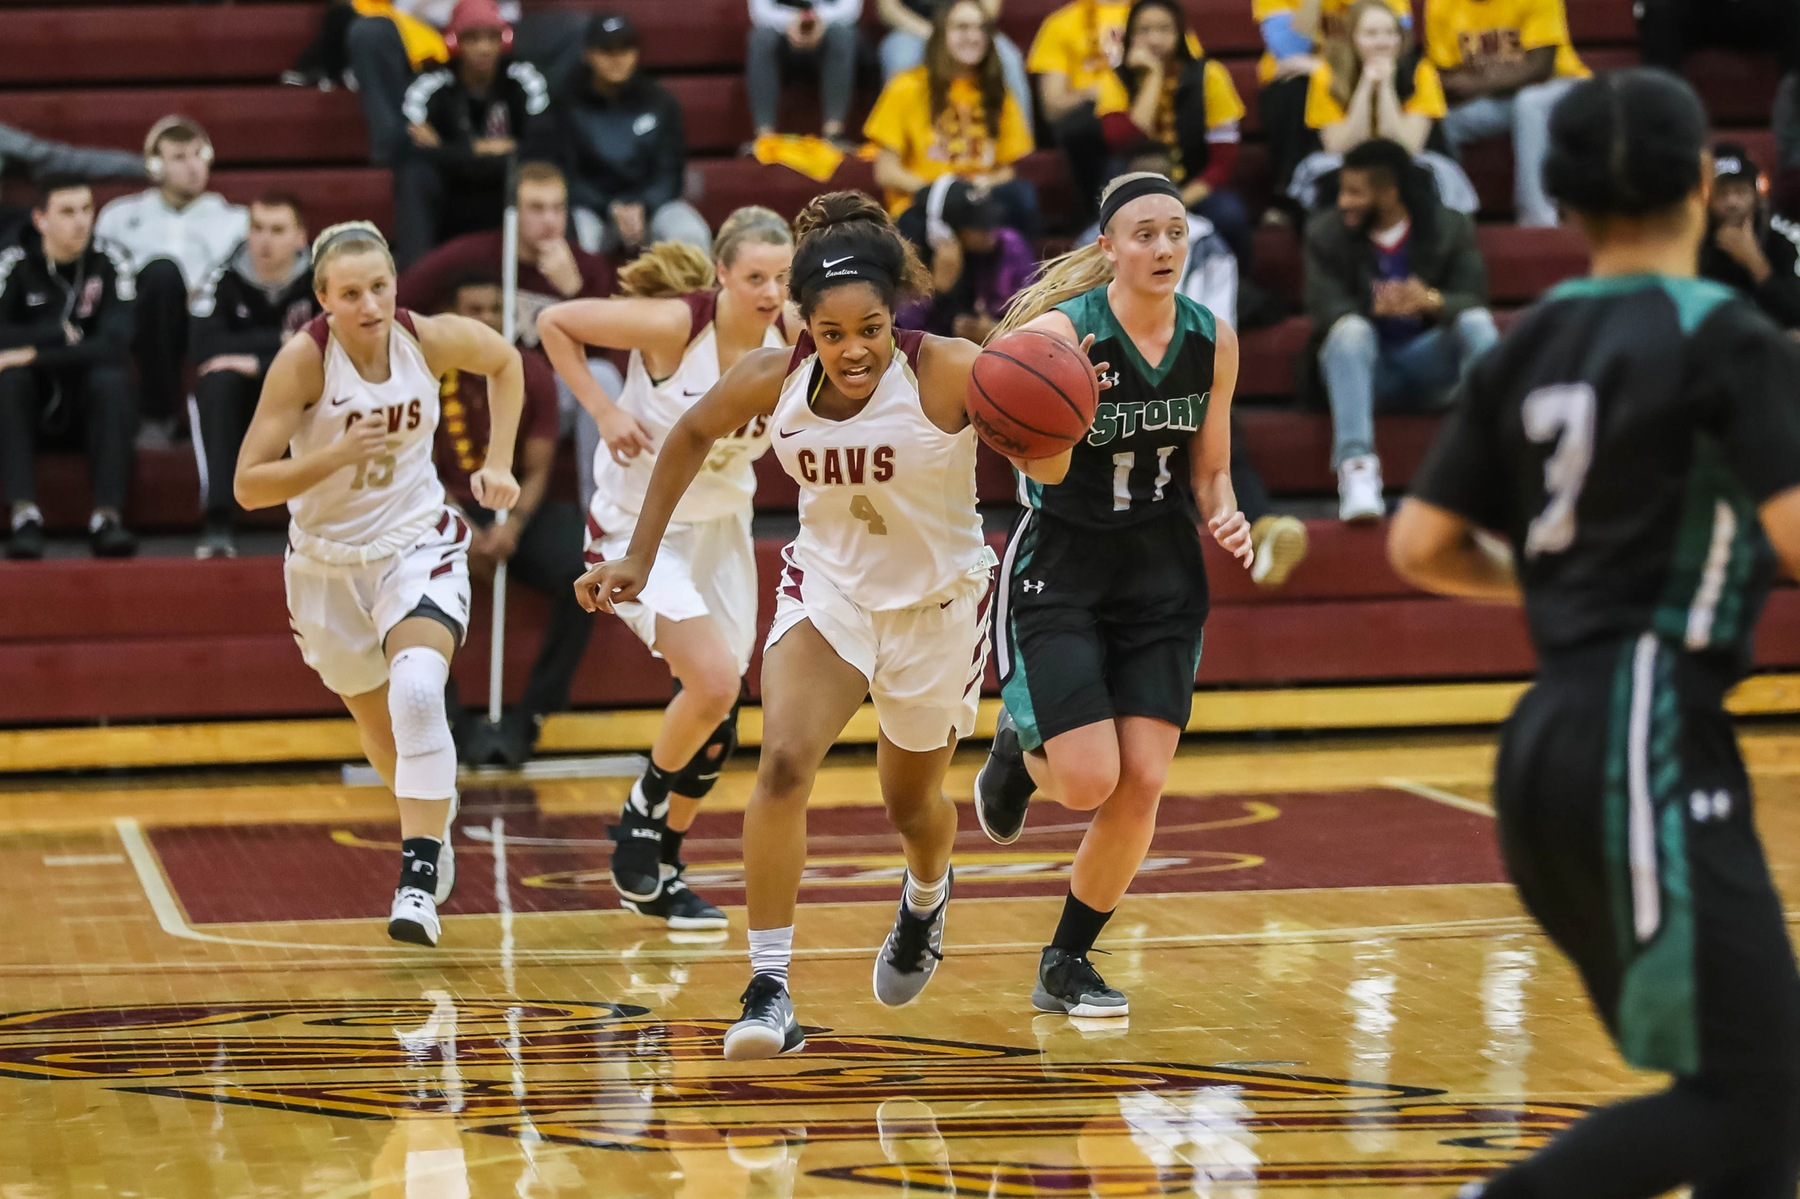 Foley's Career Night Helps Walsh Charge By Hillsdale